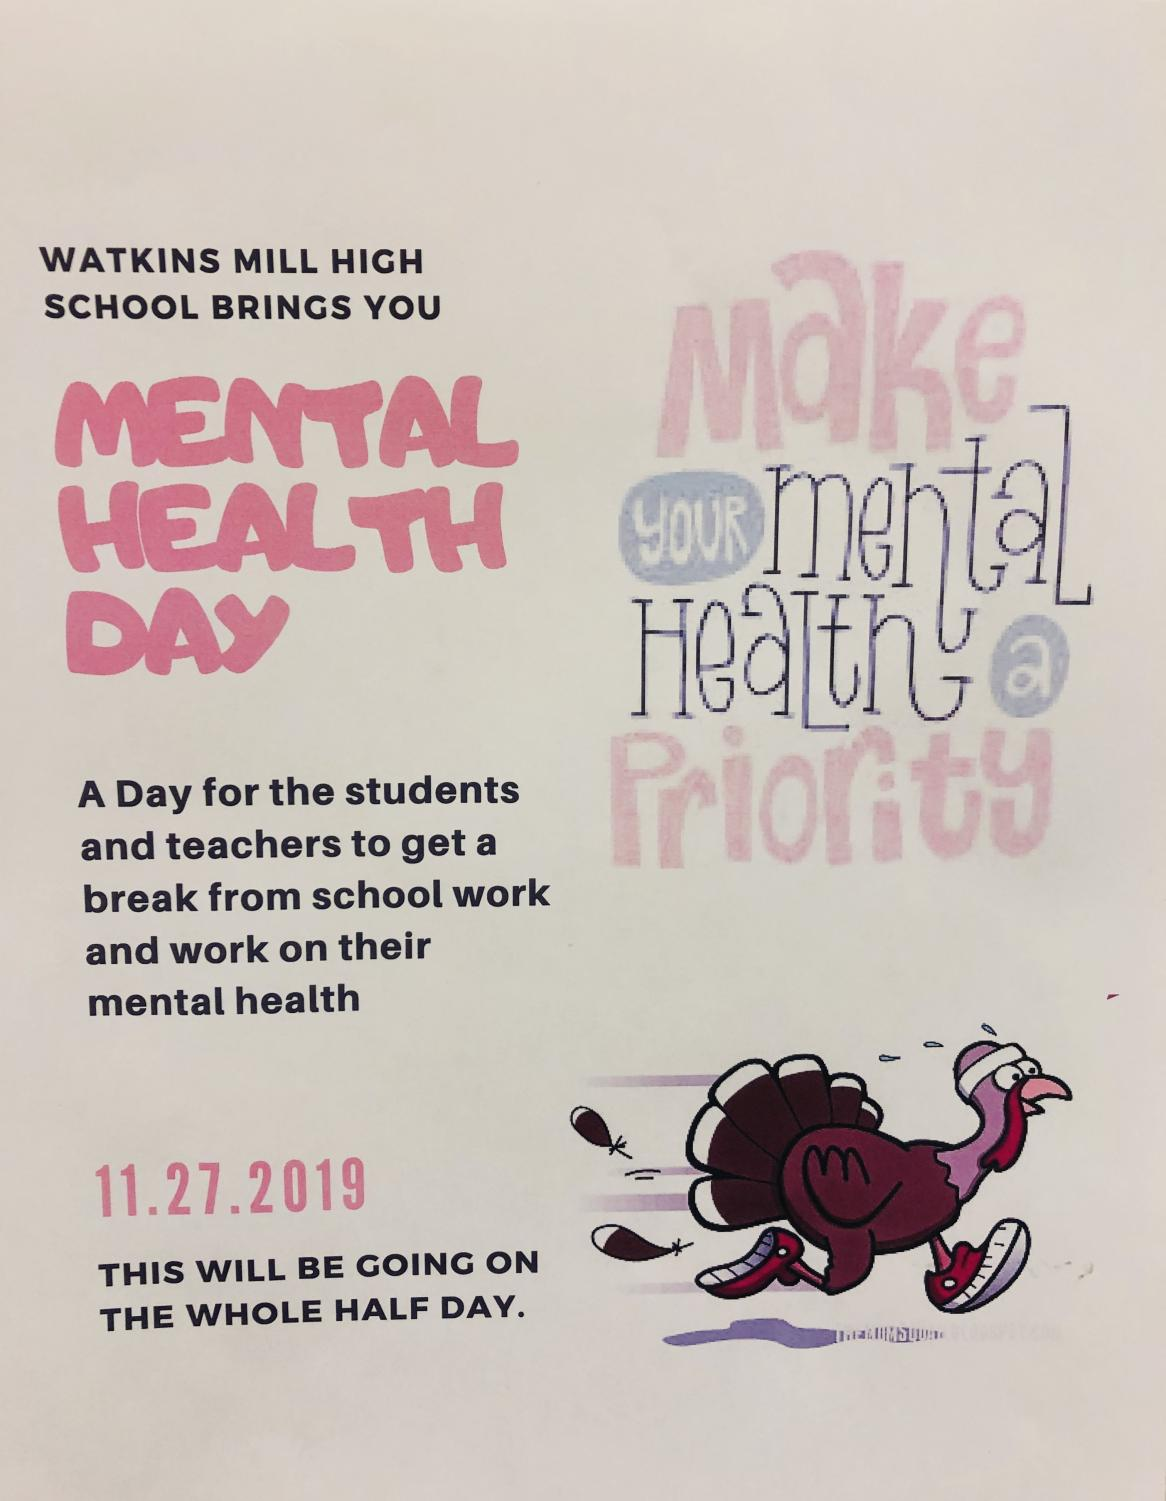 A poster made by the Student Leadership class for the Mental Health Day. The Mental Health Day will be on Wednesday, November 27 to let students unwind before the long weekend.